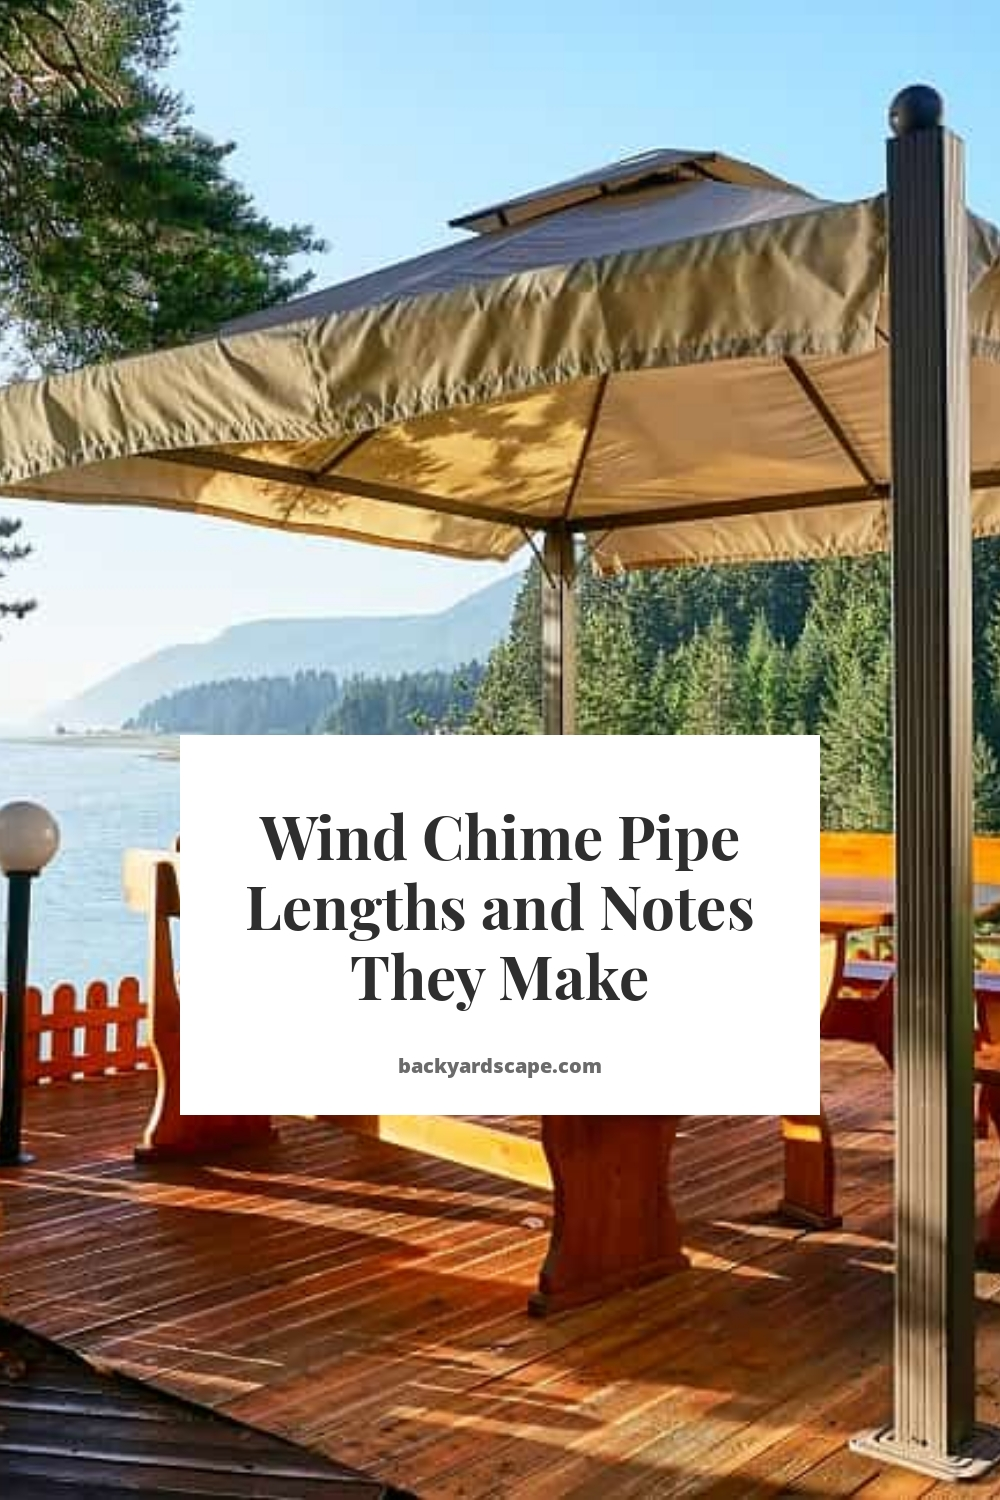 Wind Chime Pipe Lengths and Notes They Make